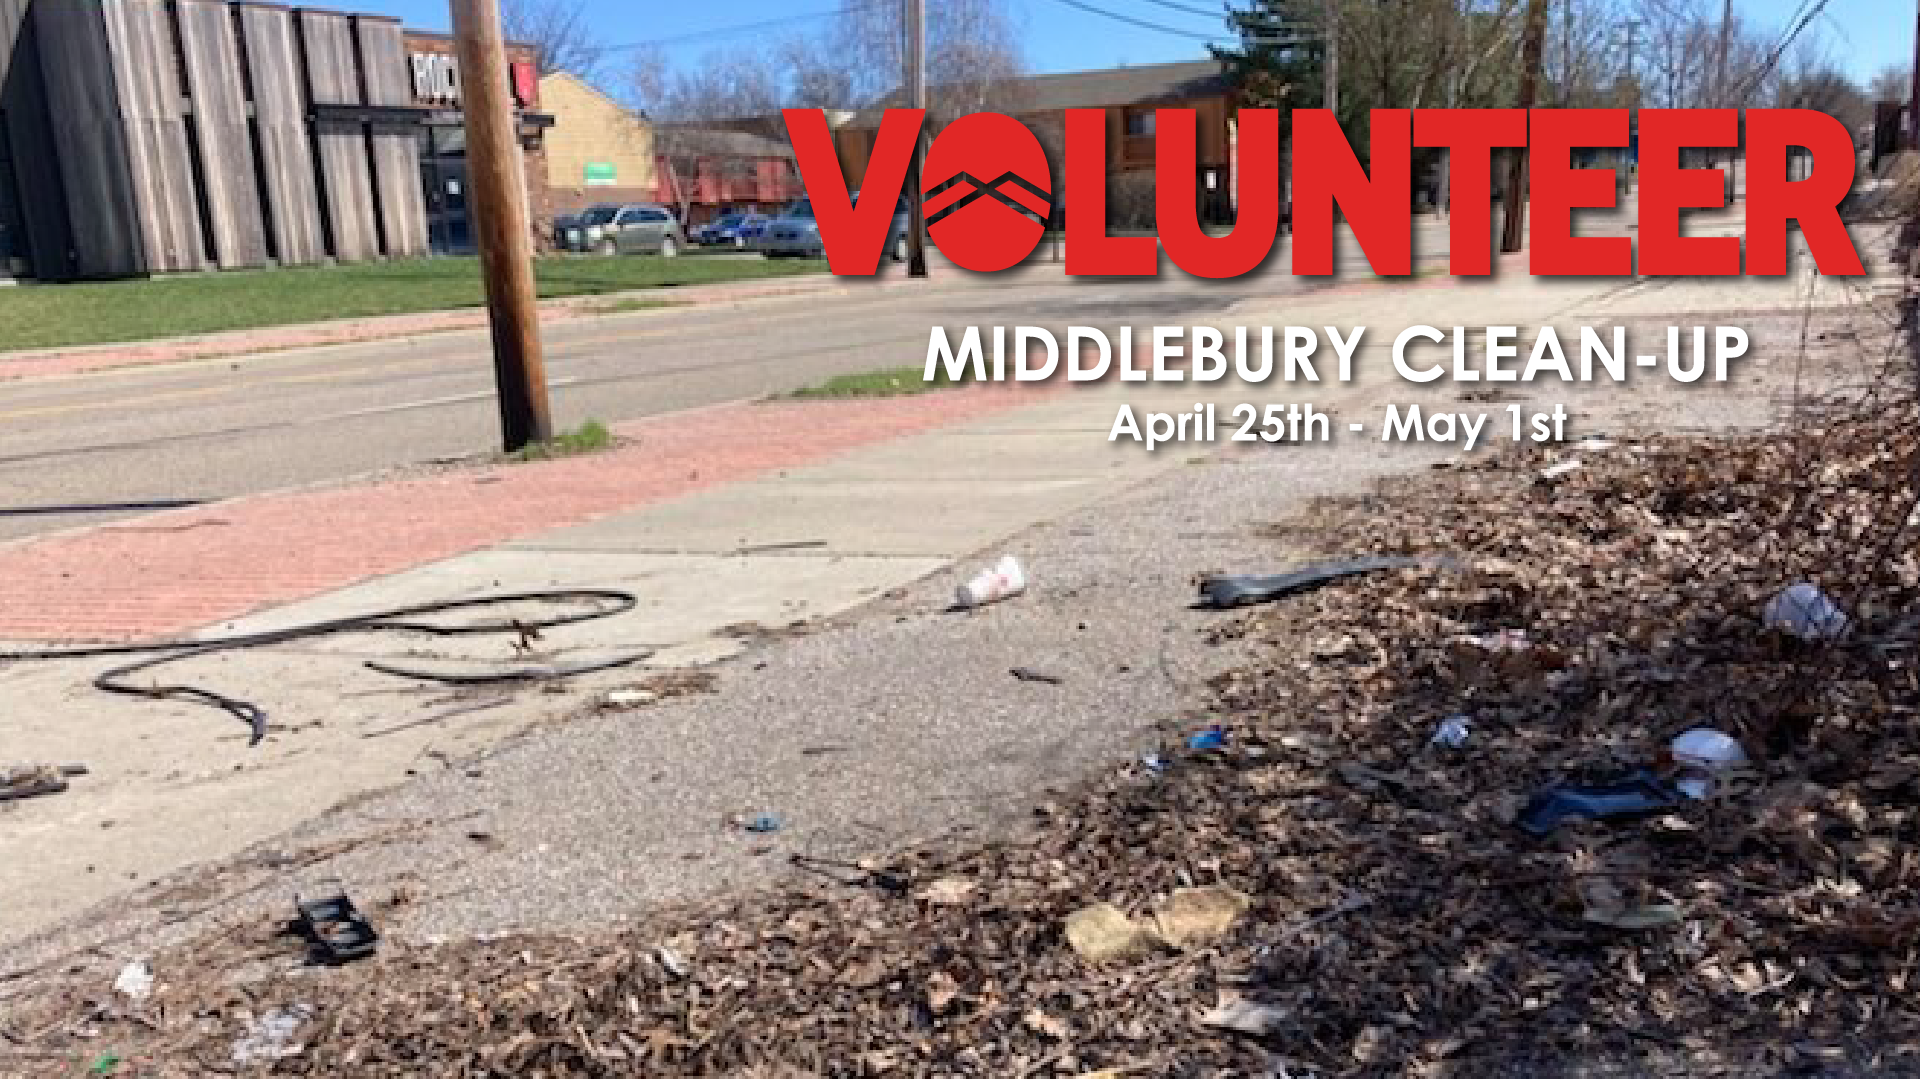 Rock Mill Middlebury Clean-up Event